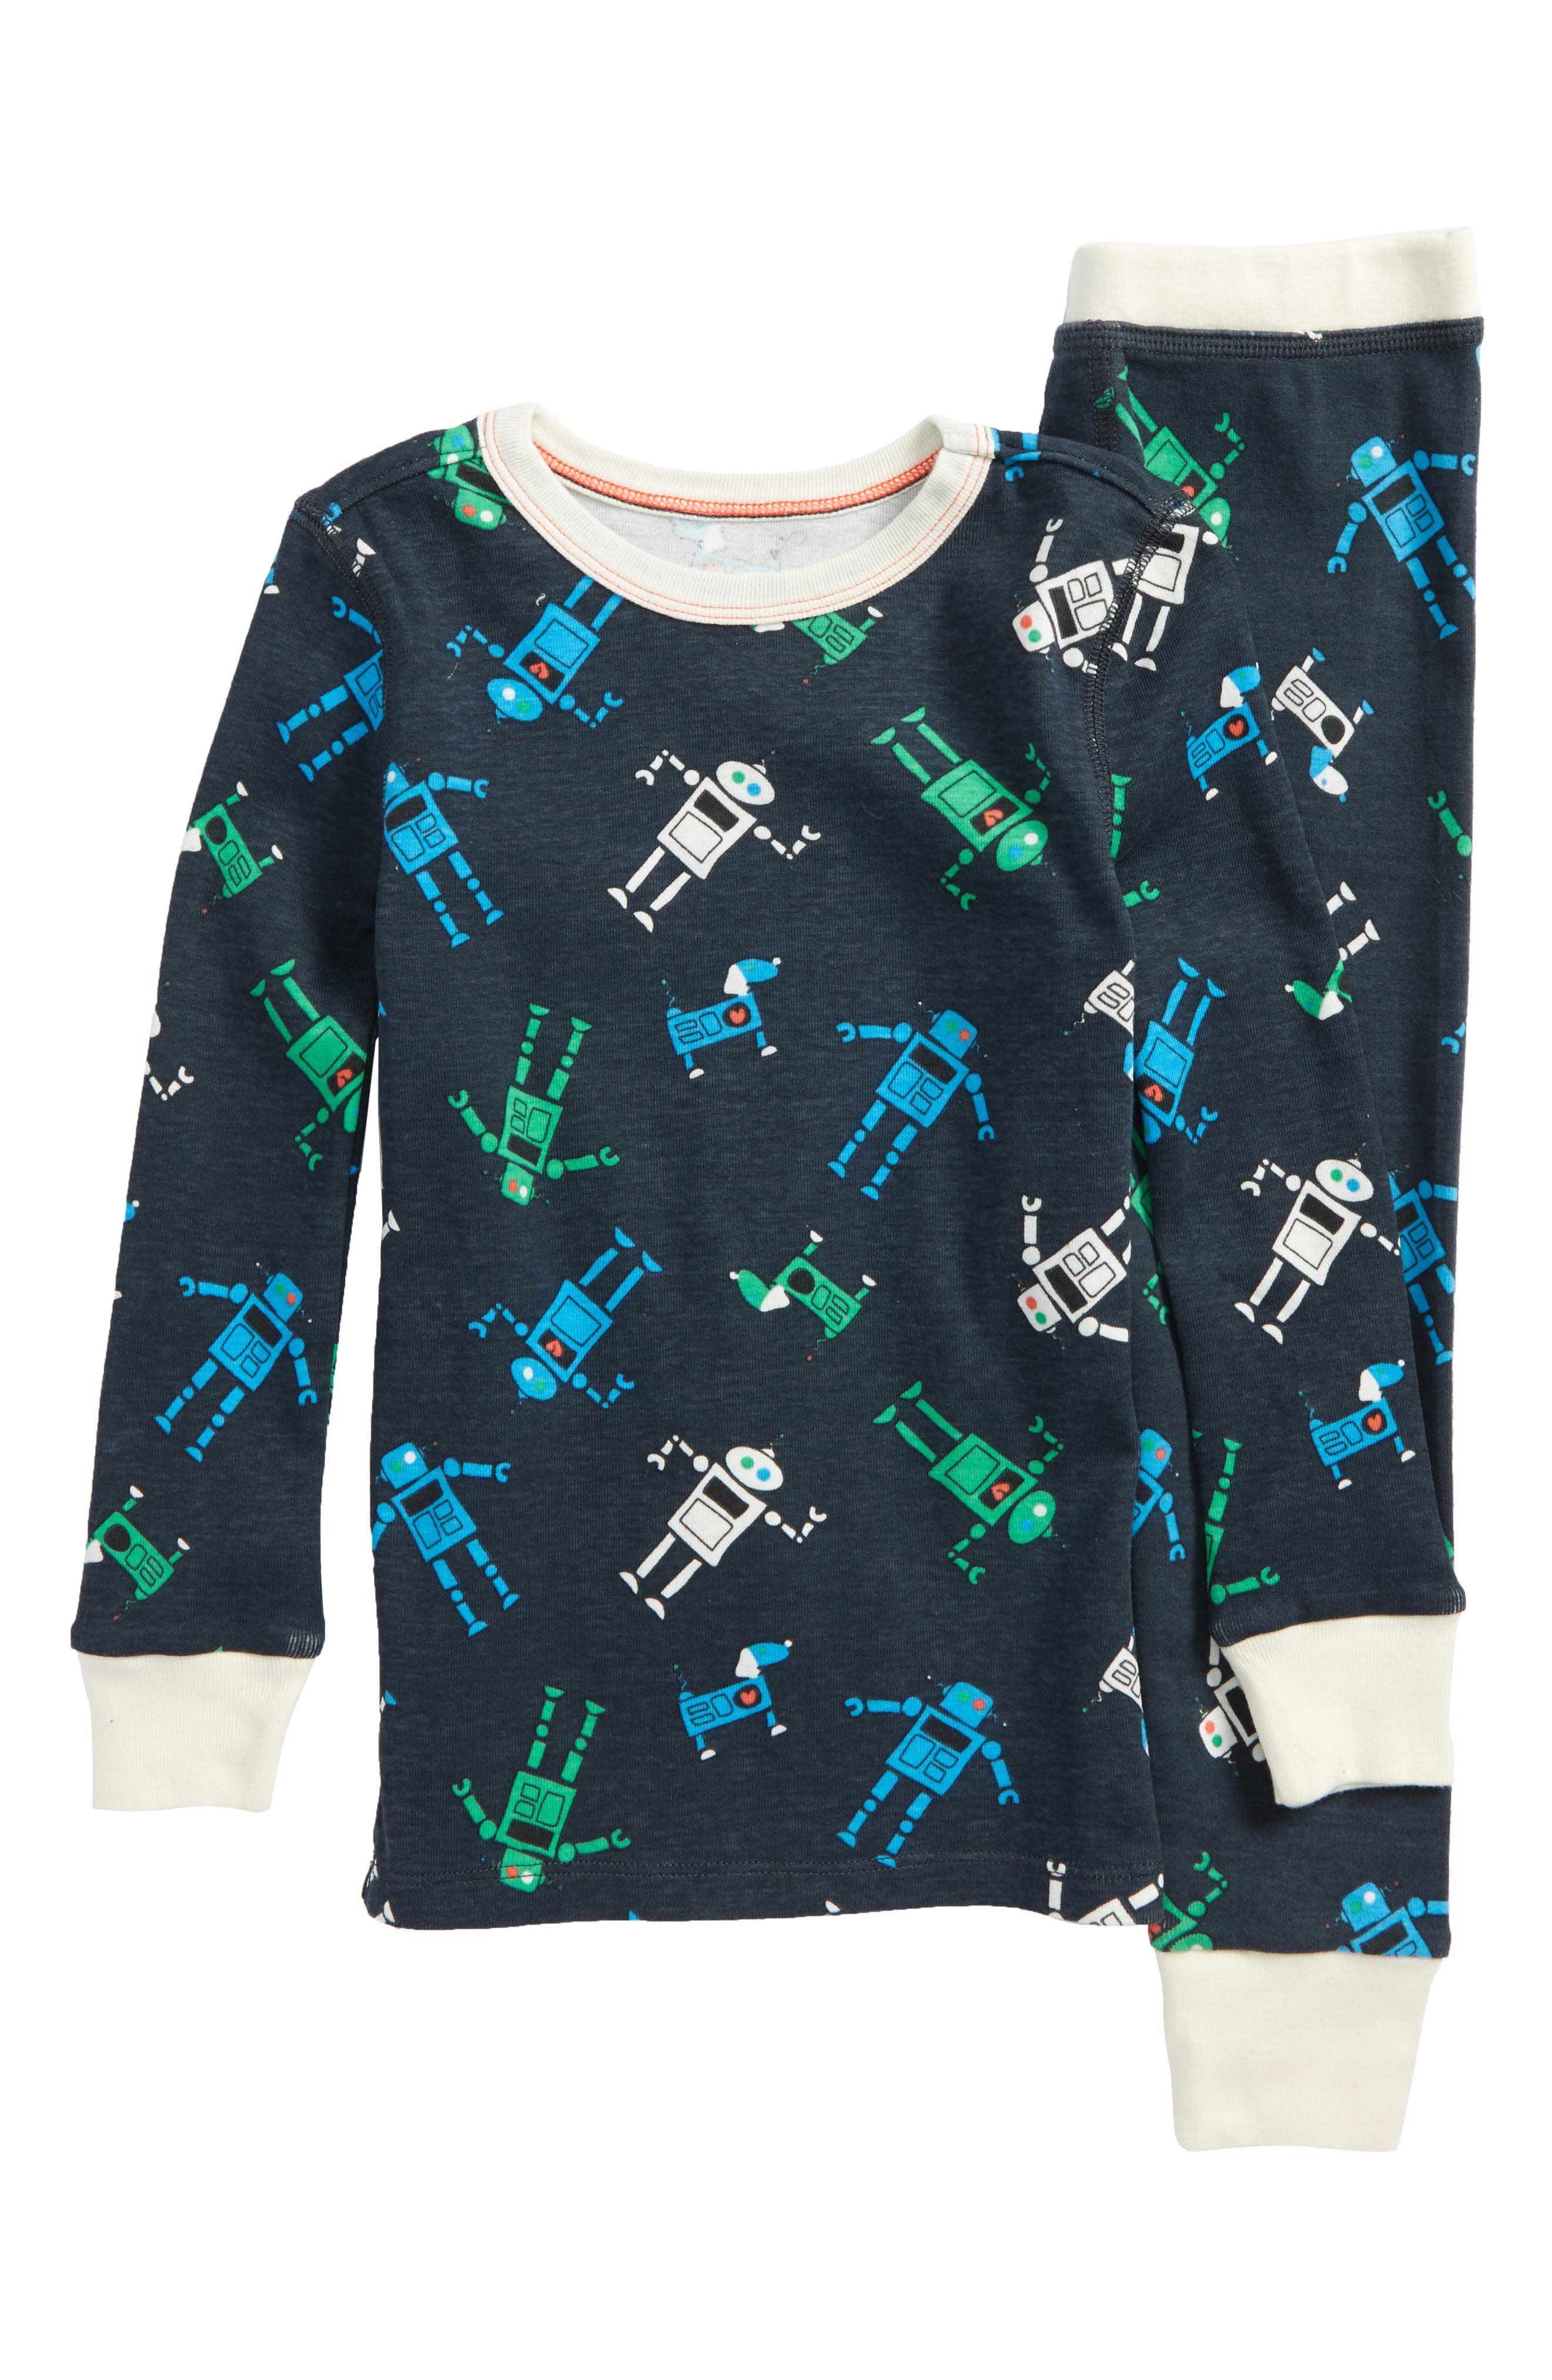 Robots Fitted Two-Piece Pajamas,                             Main thumbnail 1, color,                             Charcoal